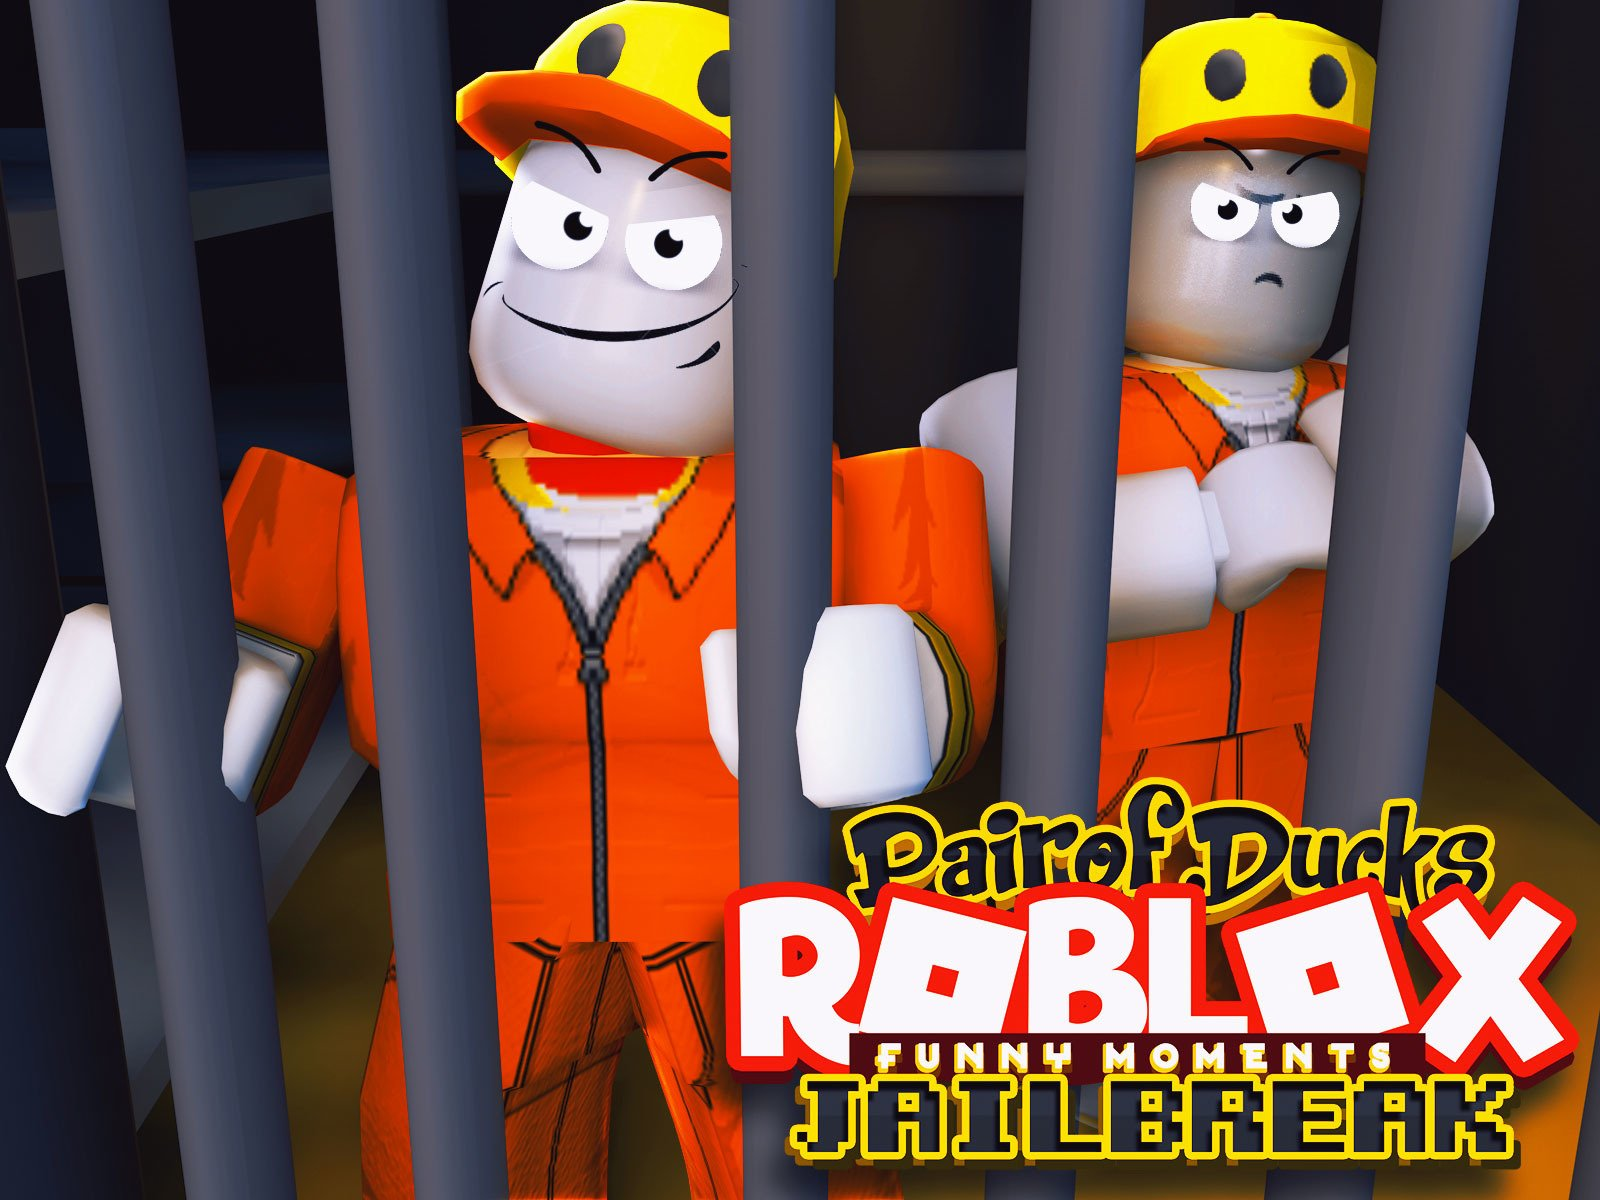 Roblox Jailbreak (PairOfDucks Funny Moments)